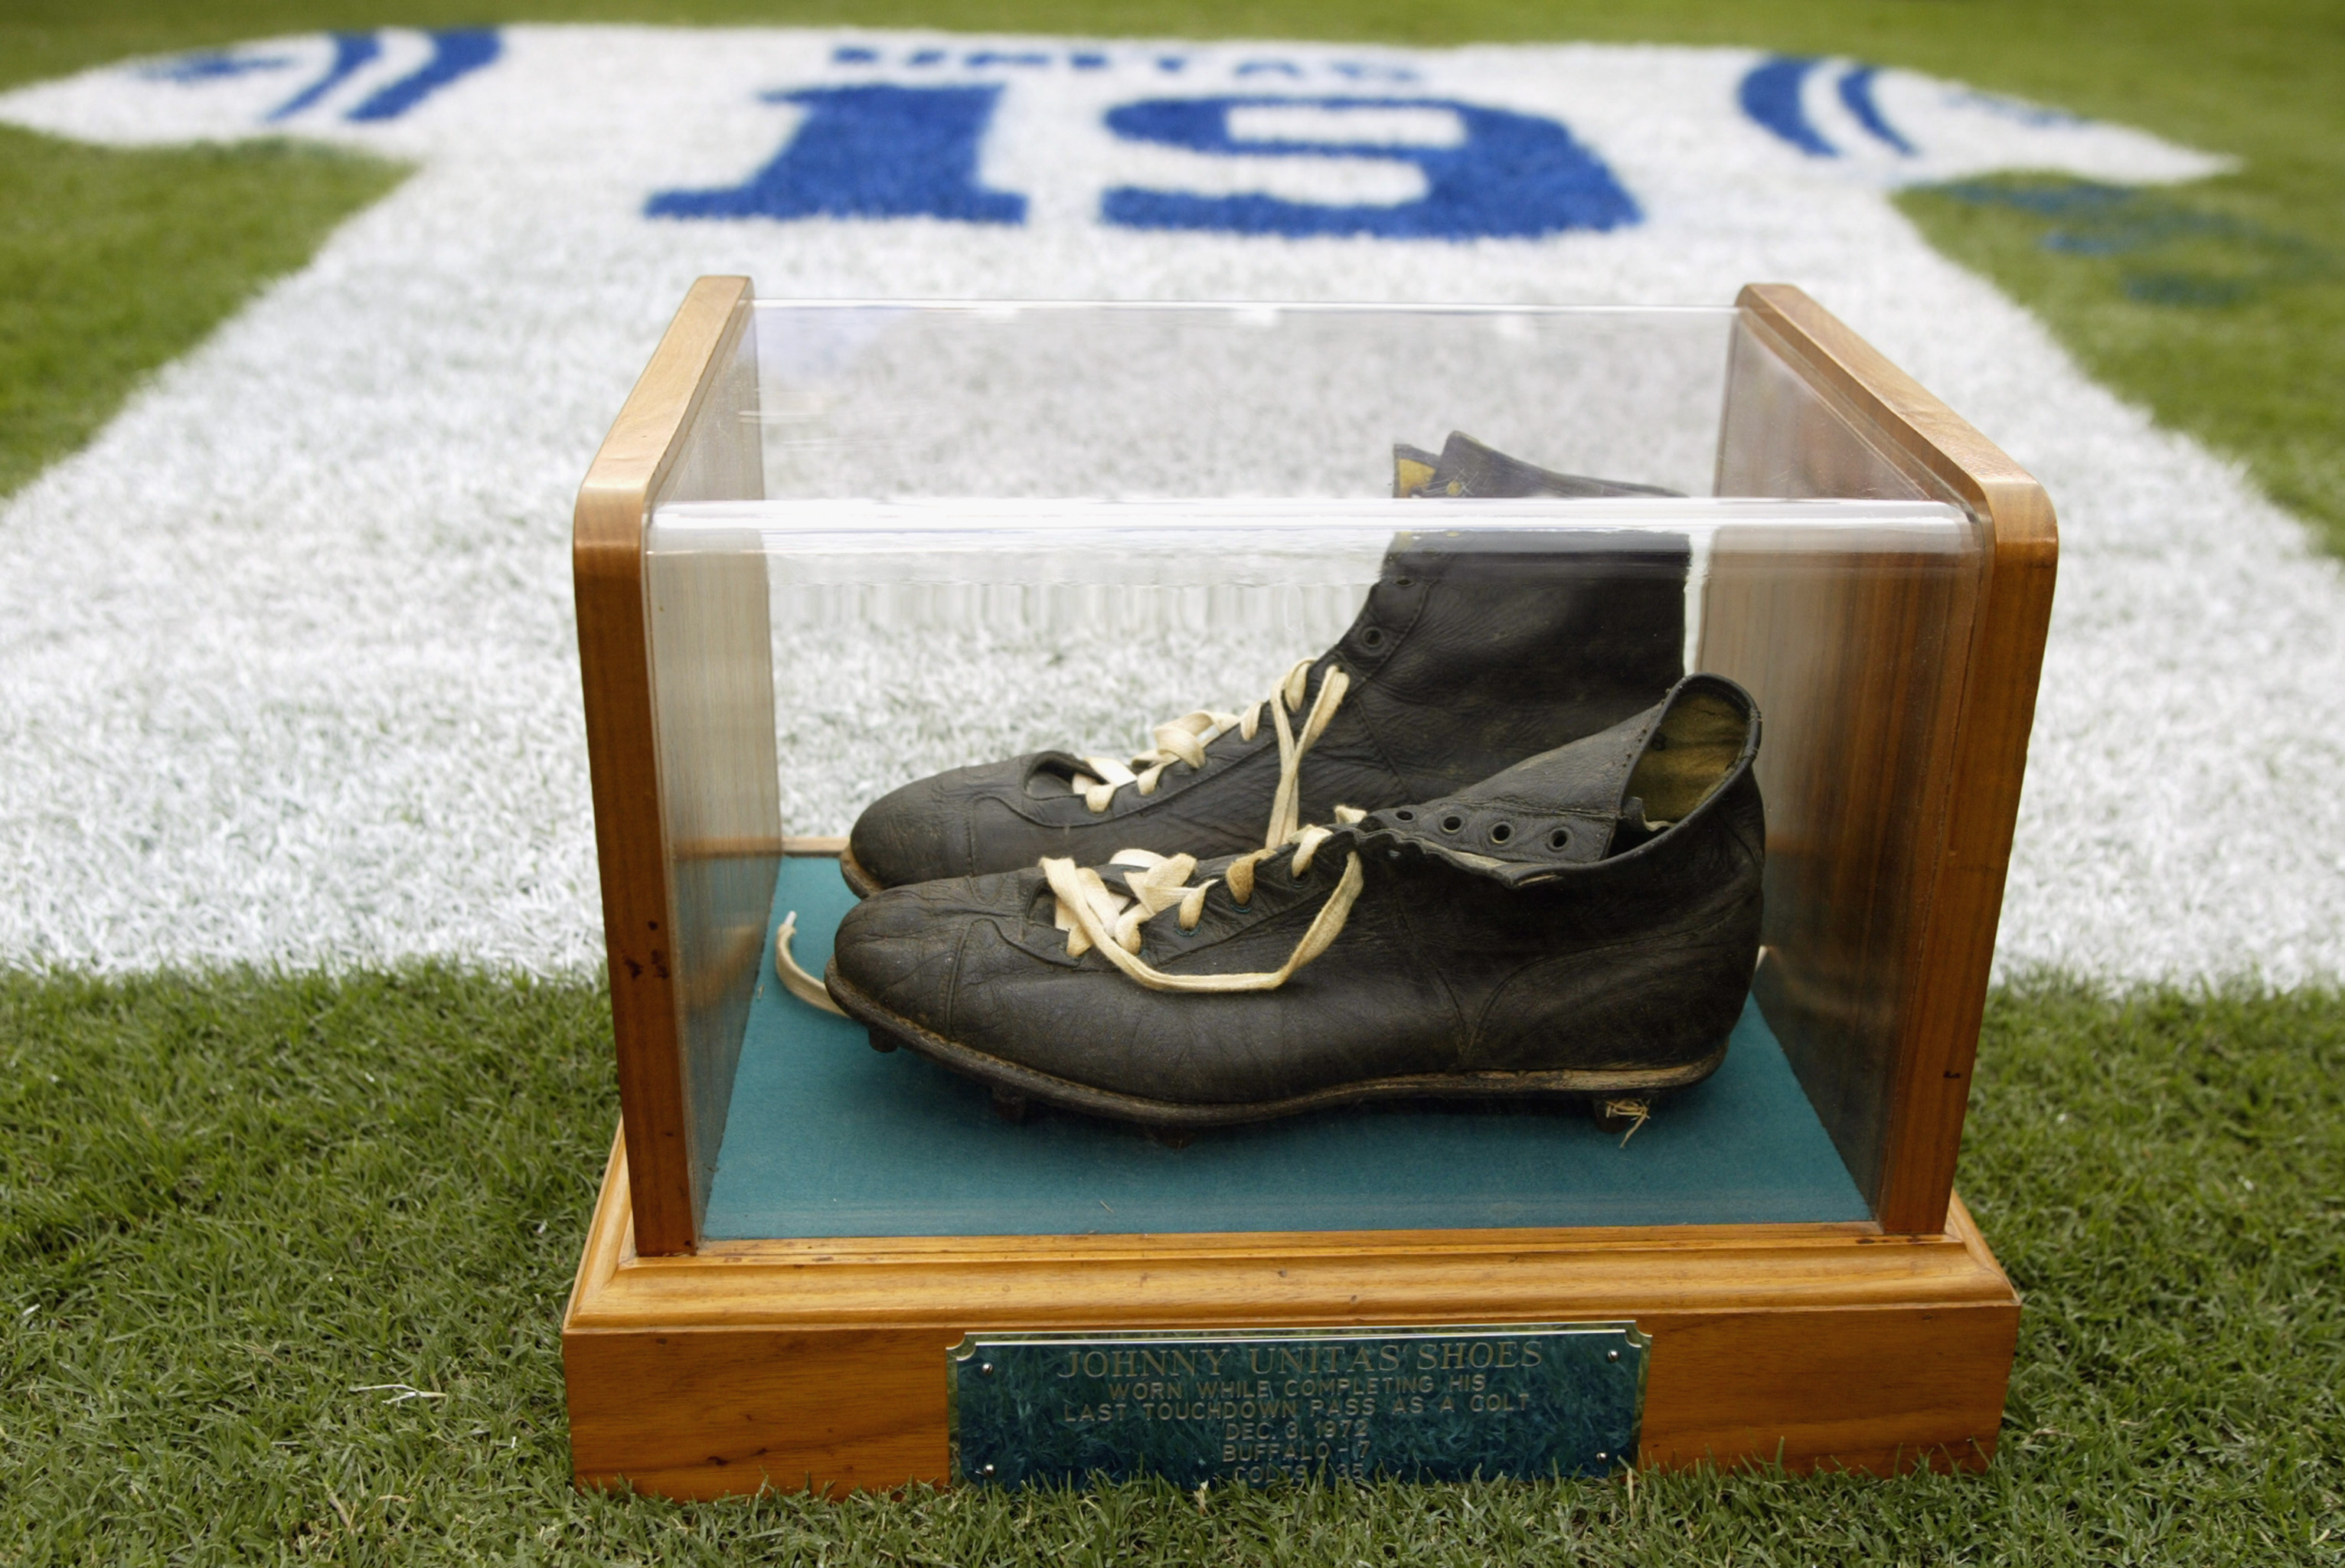 A halftime tribute to Hall of Fame quarterback Johnny Unitas #19 of the Baltimore Colts shows his signature black high tops in a glass case on Sept. 15, 2002 at Ravens Stadium in Baltimore.  (credit: Scott Halleran/Getty Images)